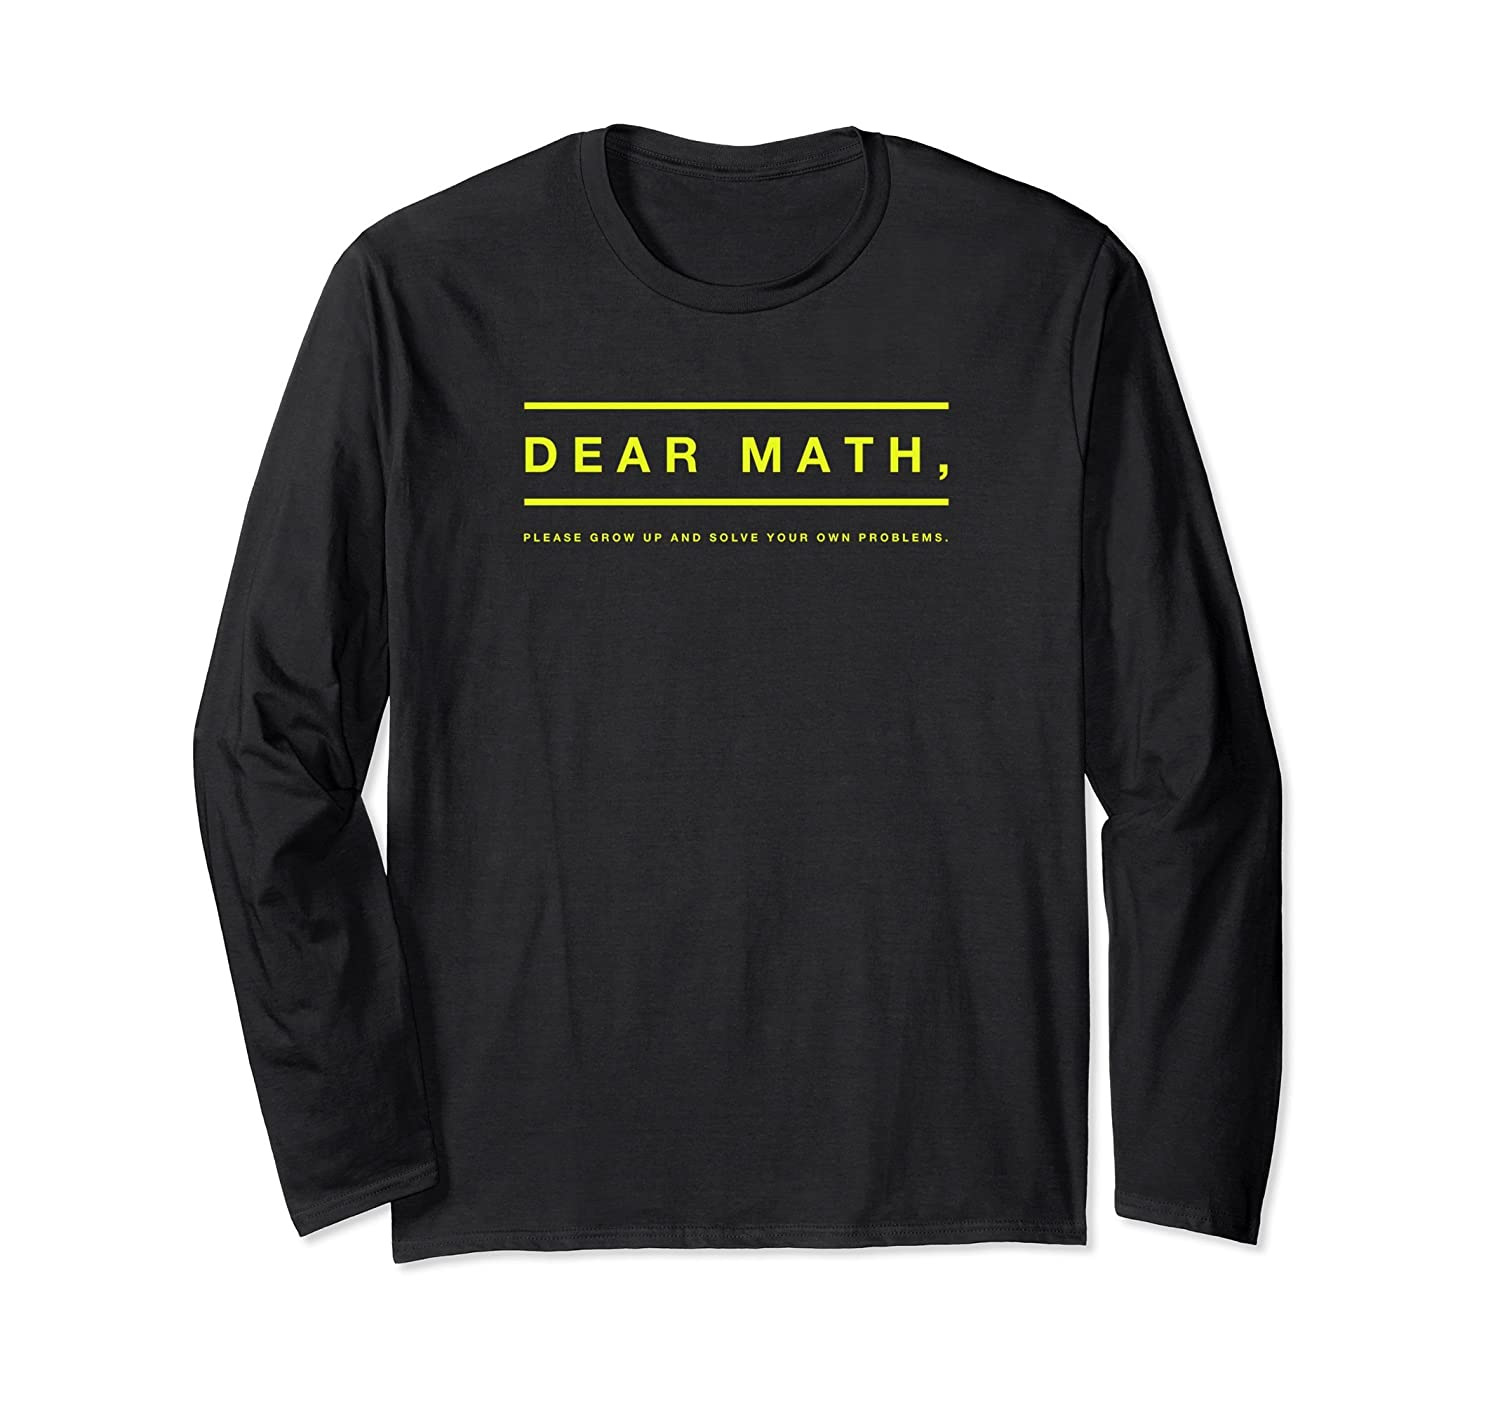 b869efe73 Dear Math Solve Your Own Problems Long Sleeve Funny T-Shirt-alottee gift